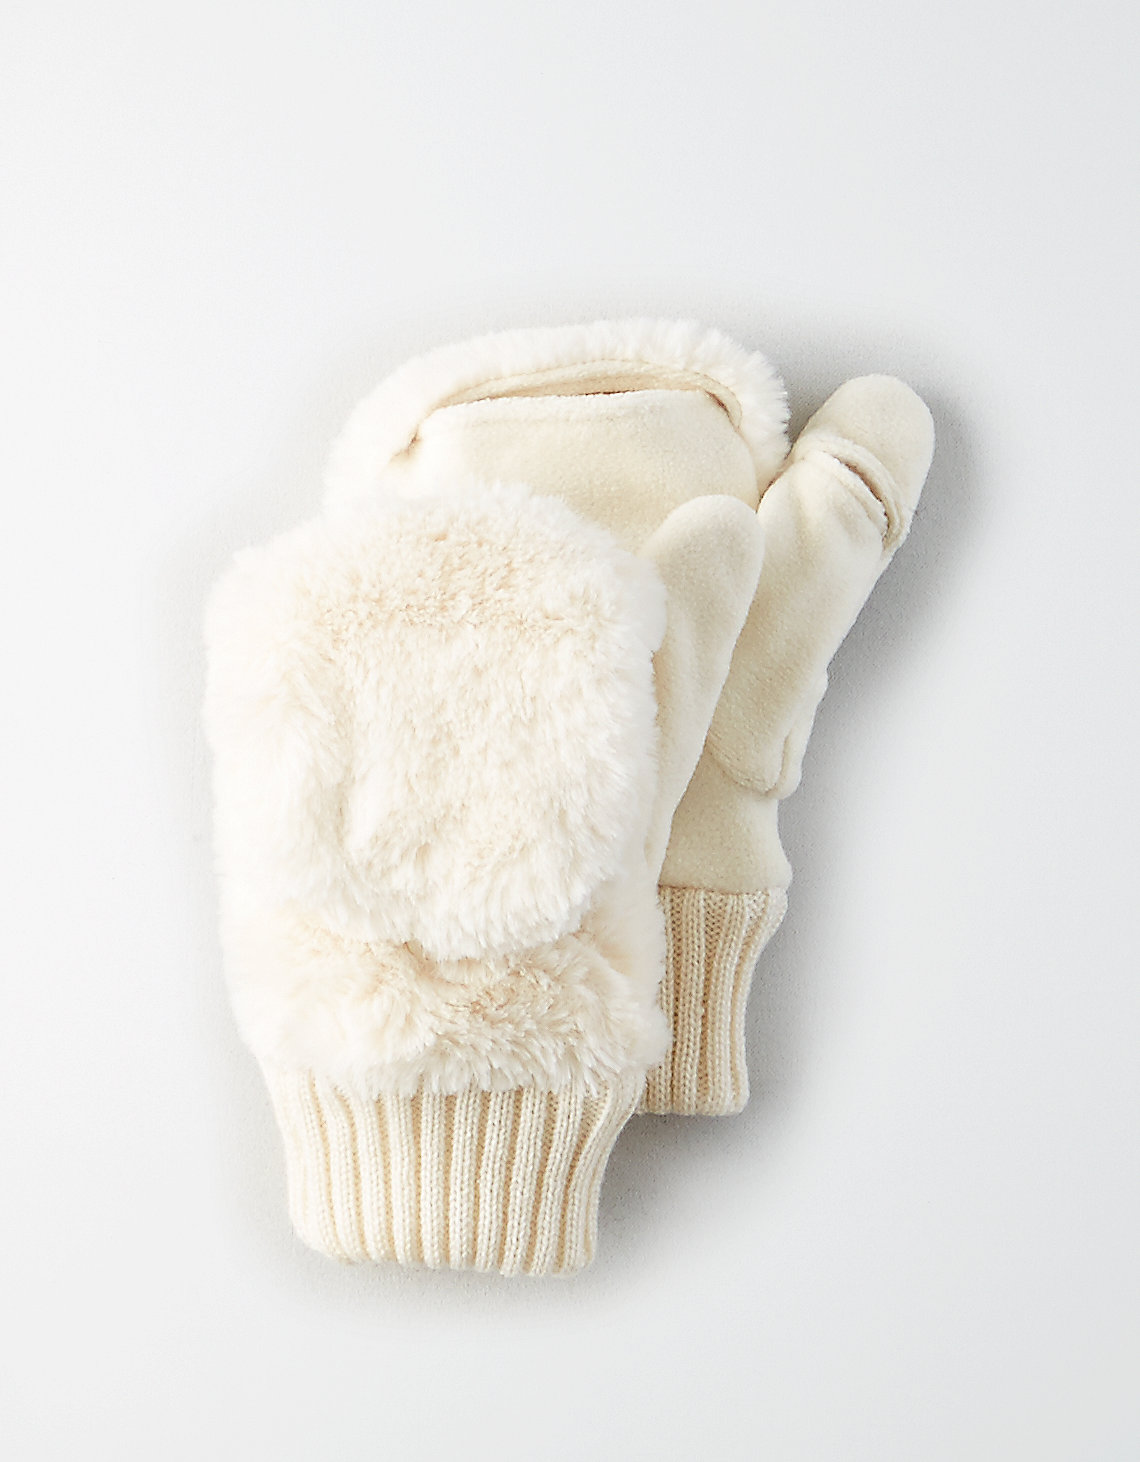 AMERICAN EAGLE MITTENS